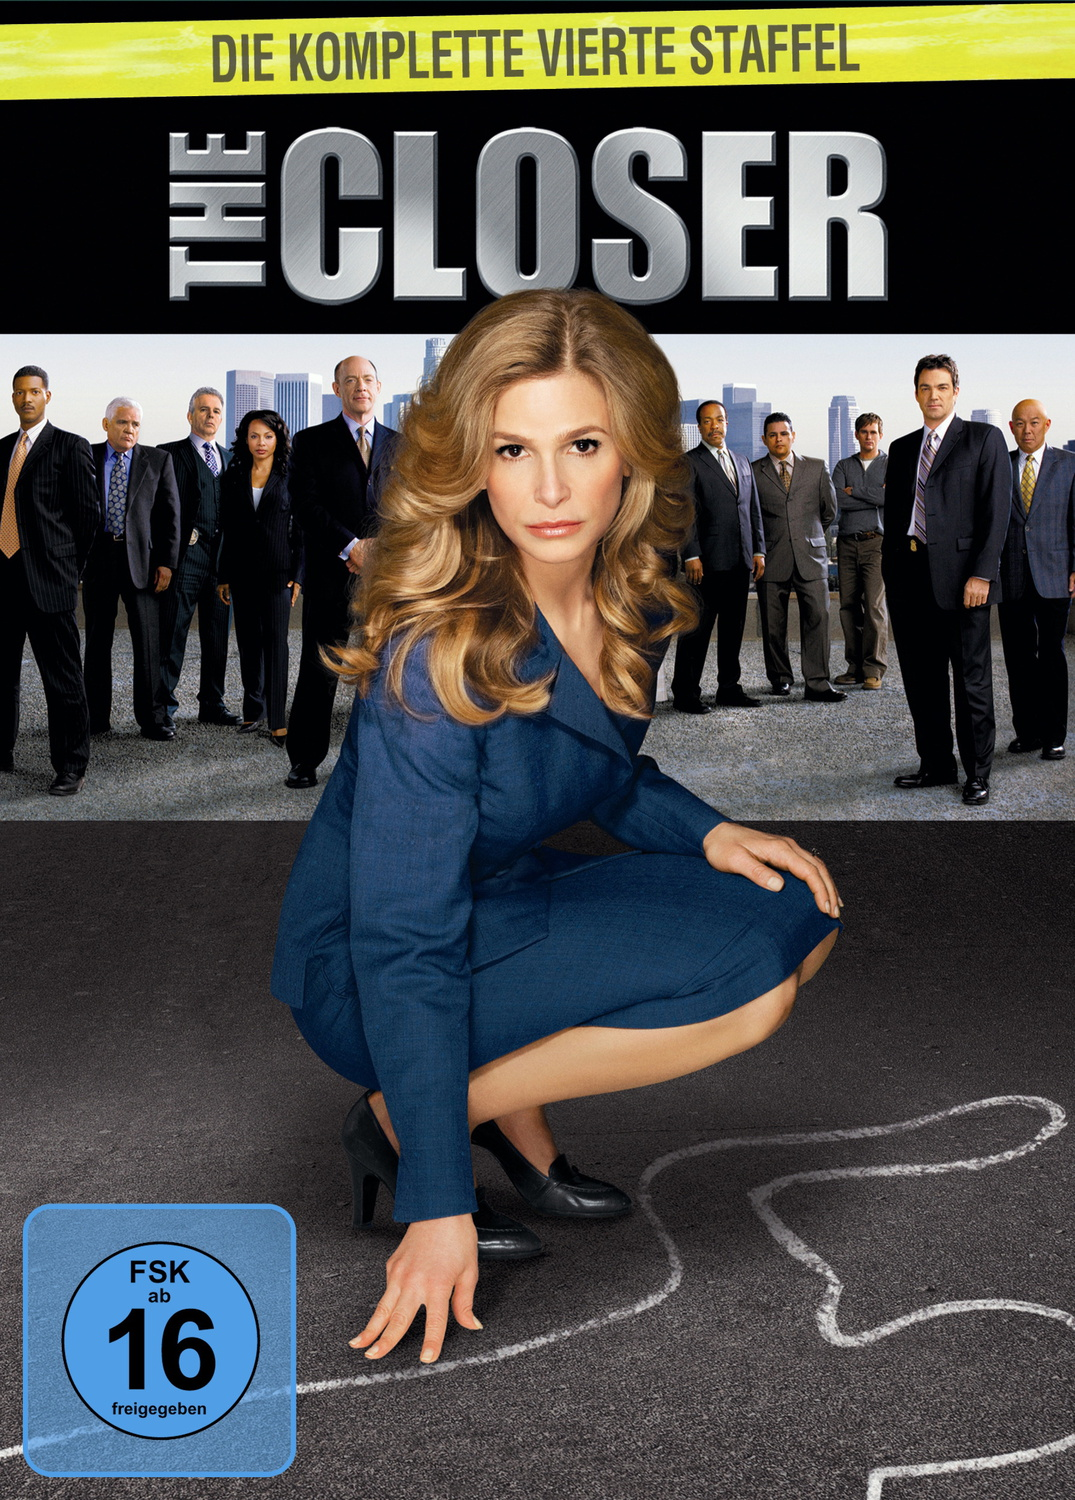 The Closer - Staffel 4